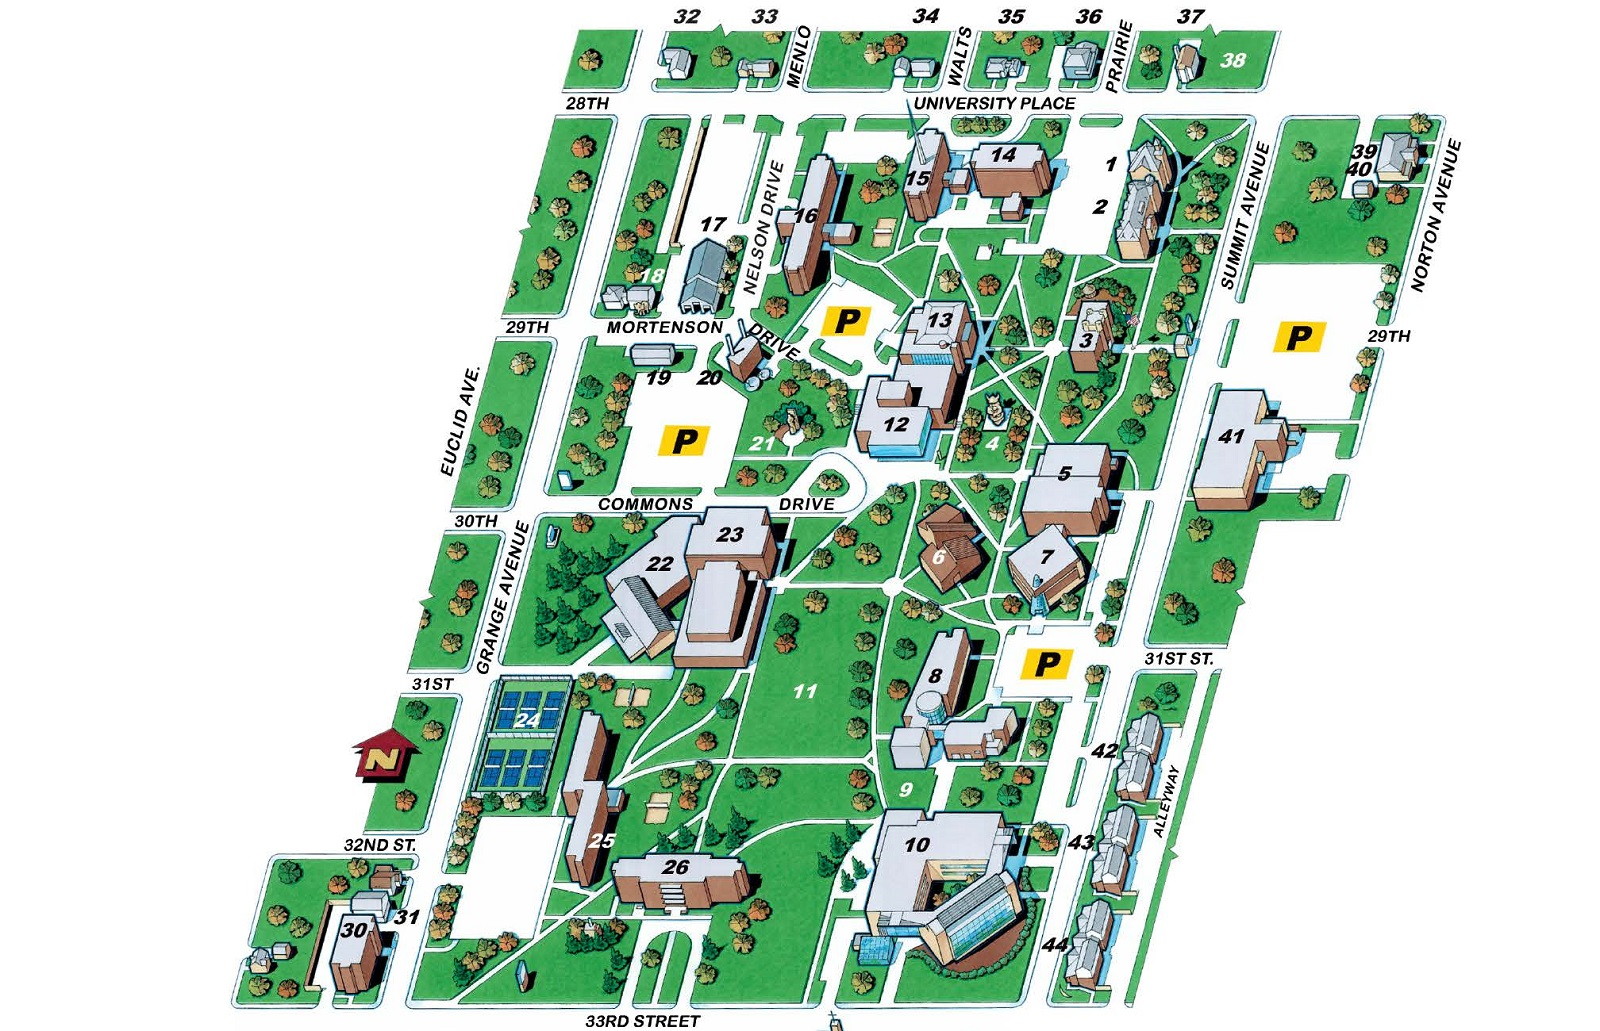 university of south dakota campus map Campus Map North Augustana University university of south dakota campus map